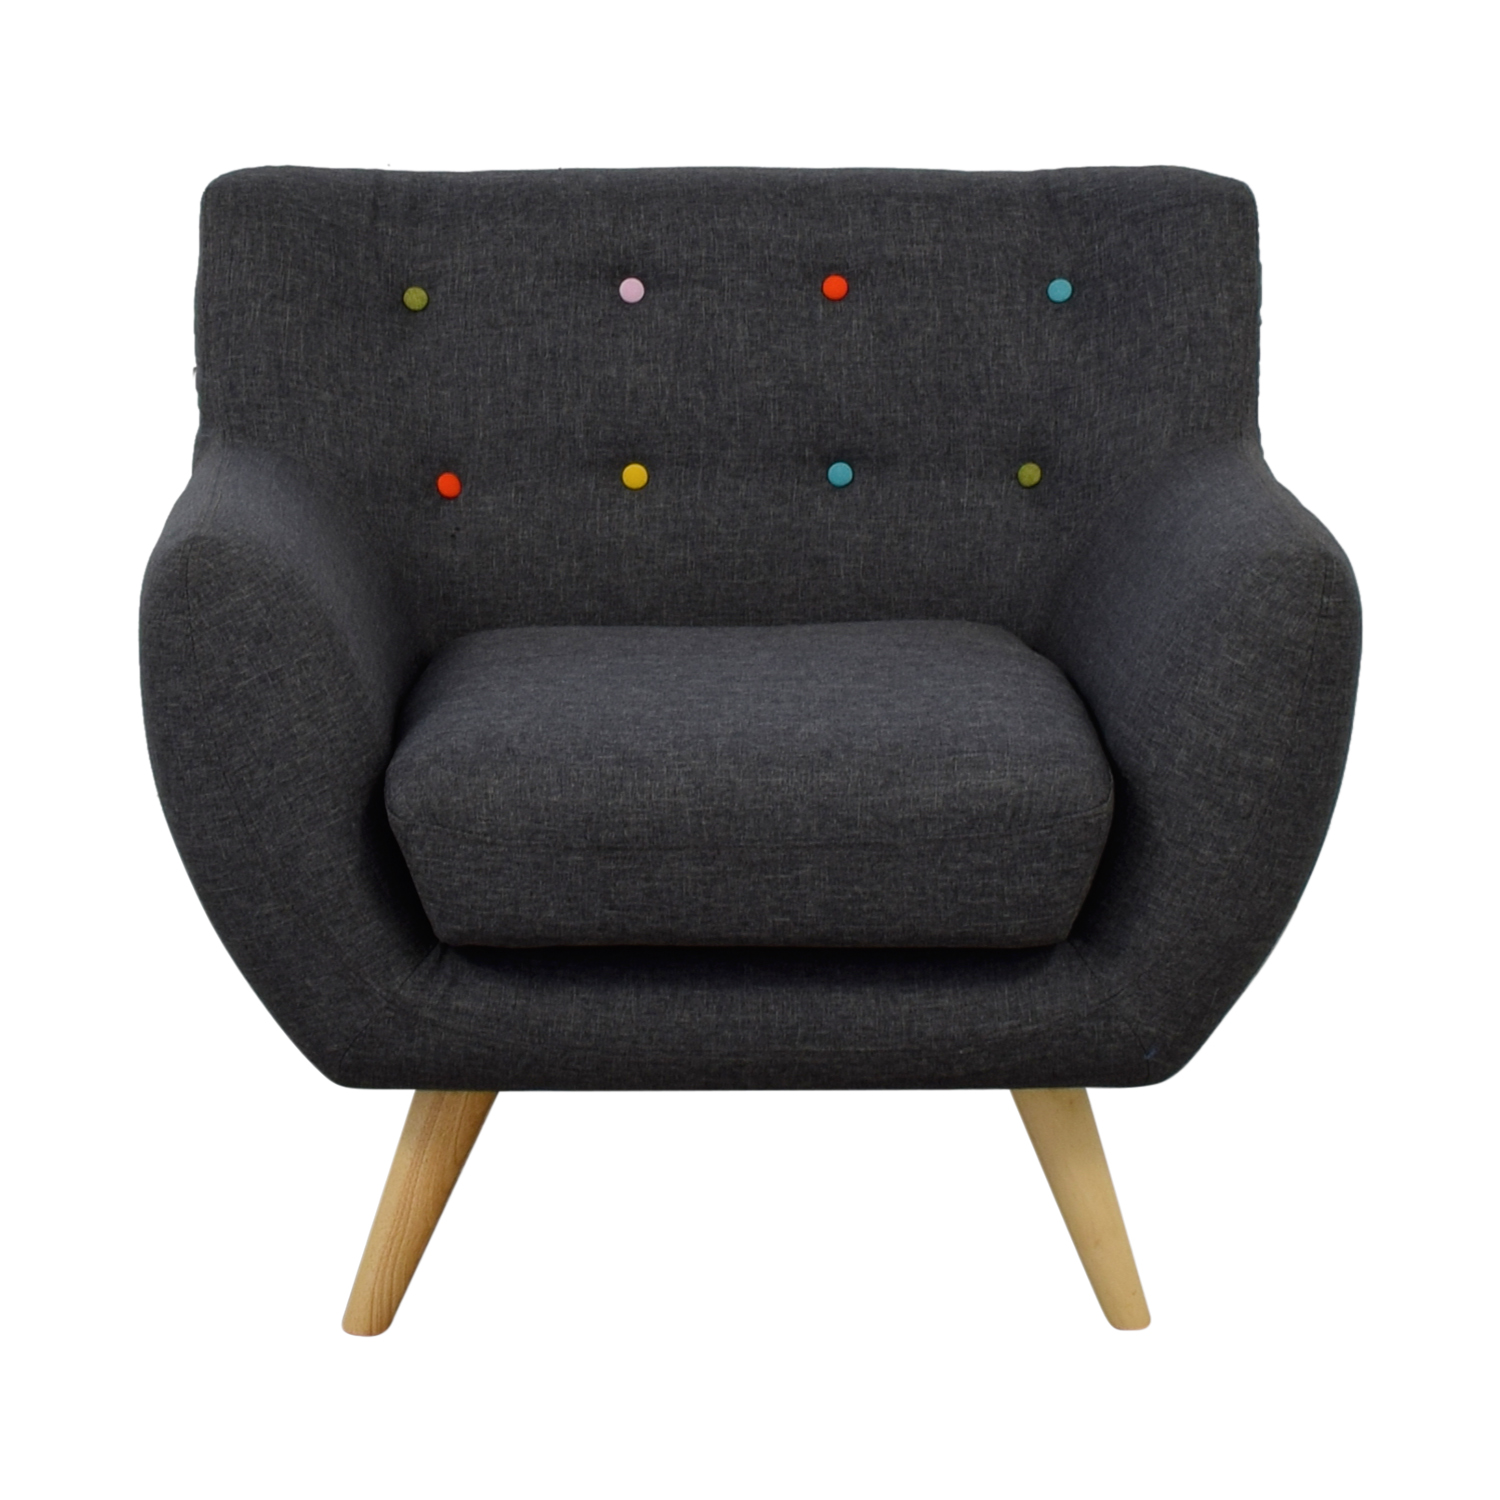 shop Modway Mid Century Accent Chair with Multi-Colored Tuft Buttons Modway Accent Chairs